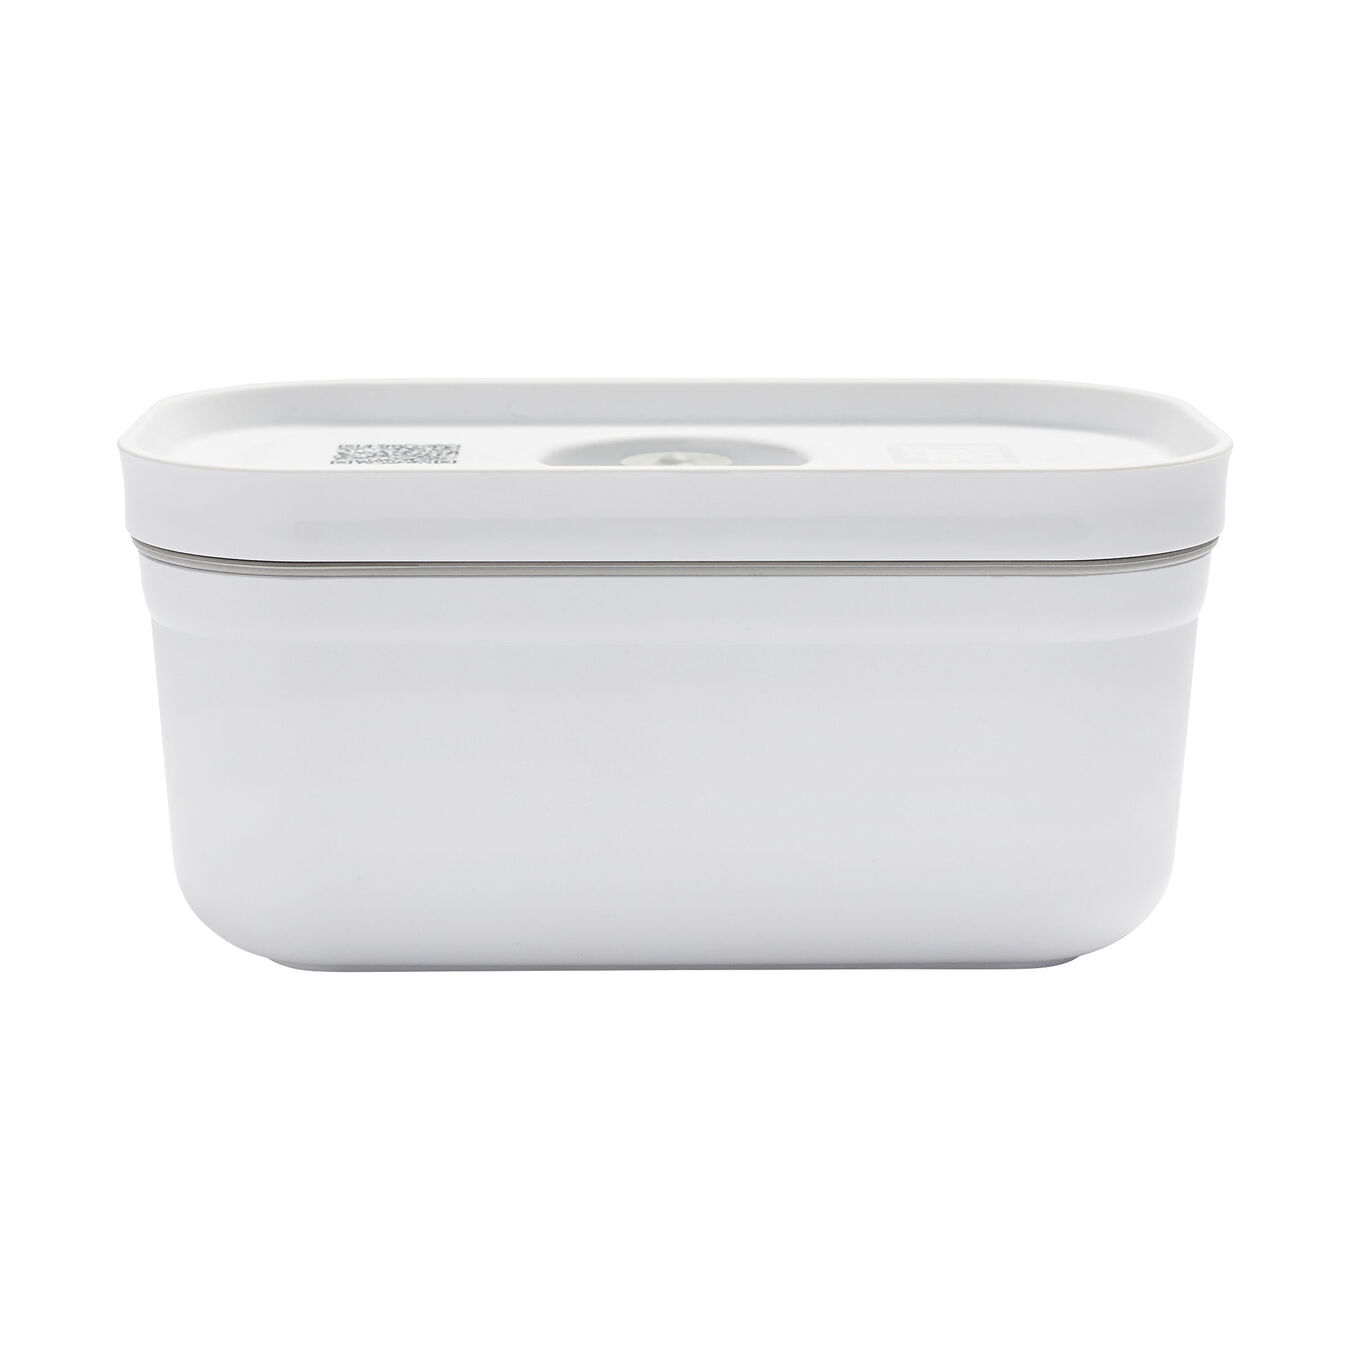 Vacuum lunch box, small, Plastic, White,,large 1